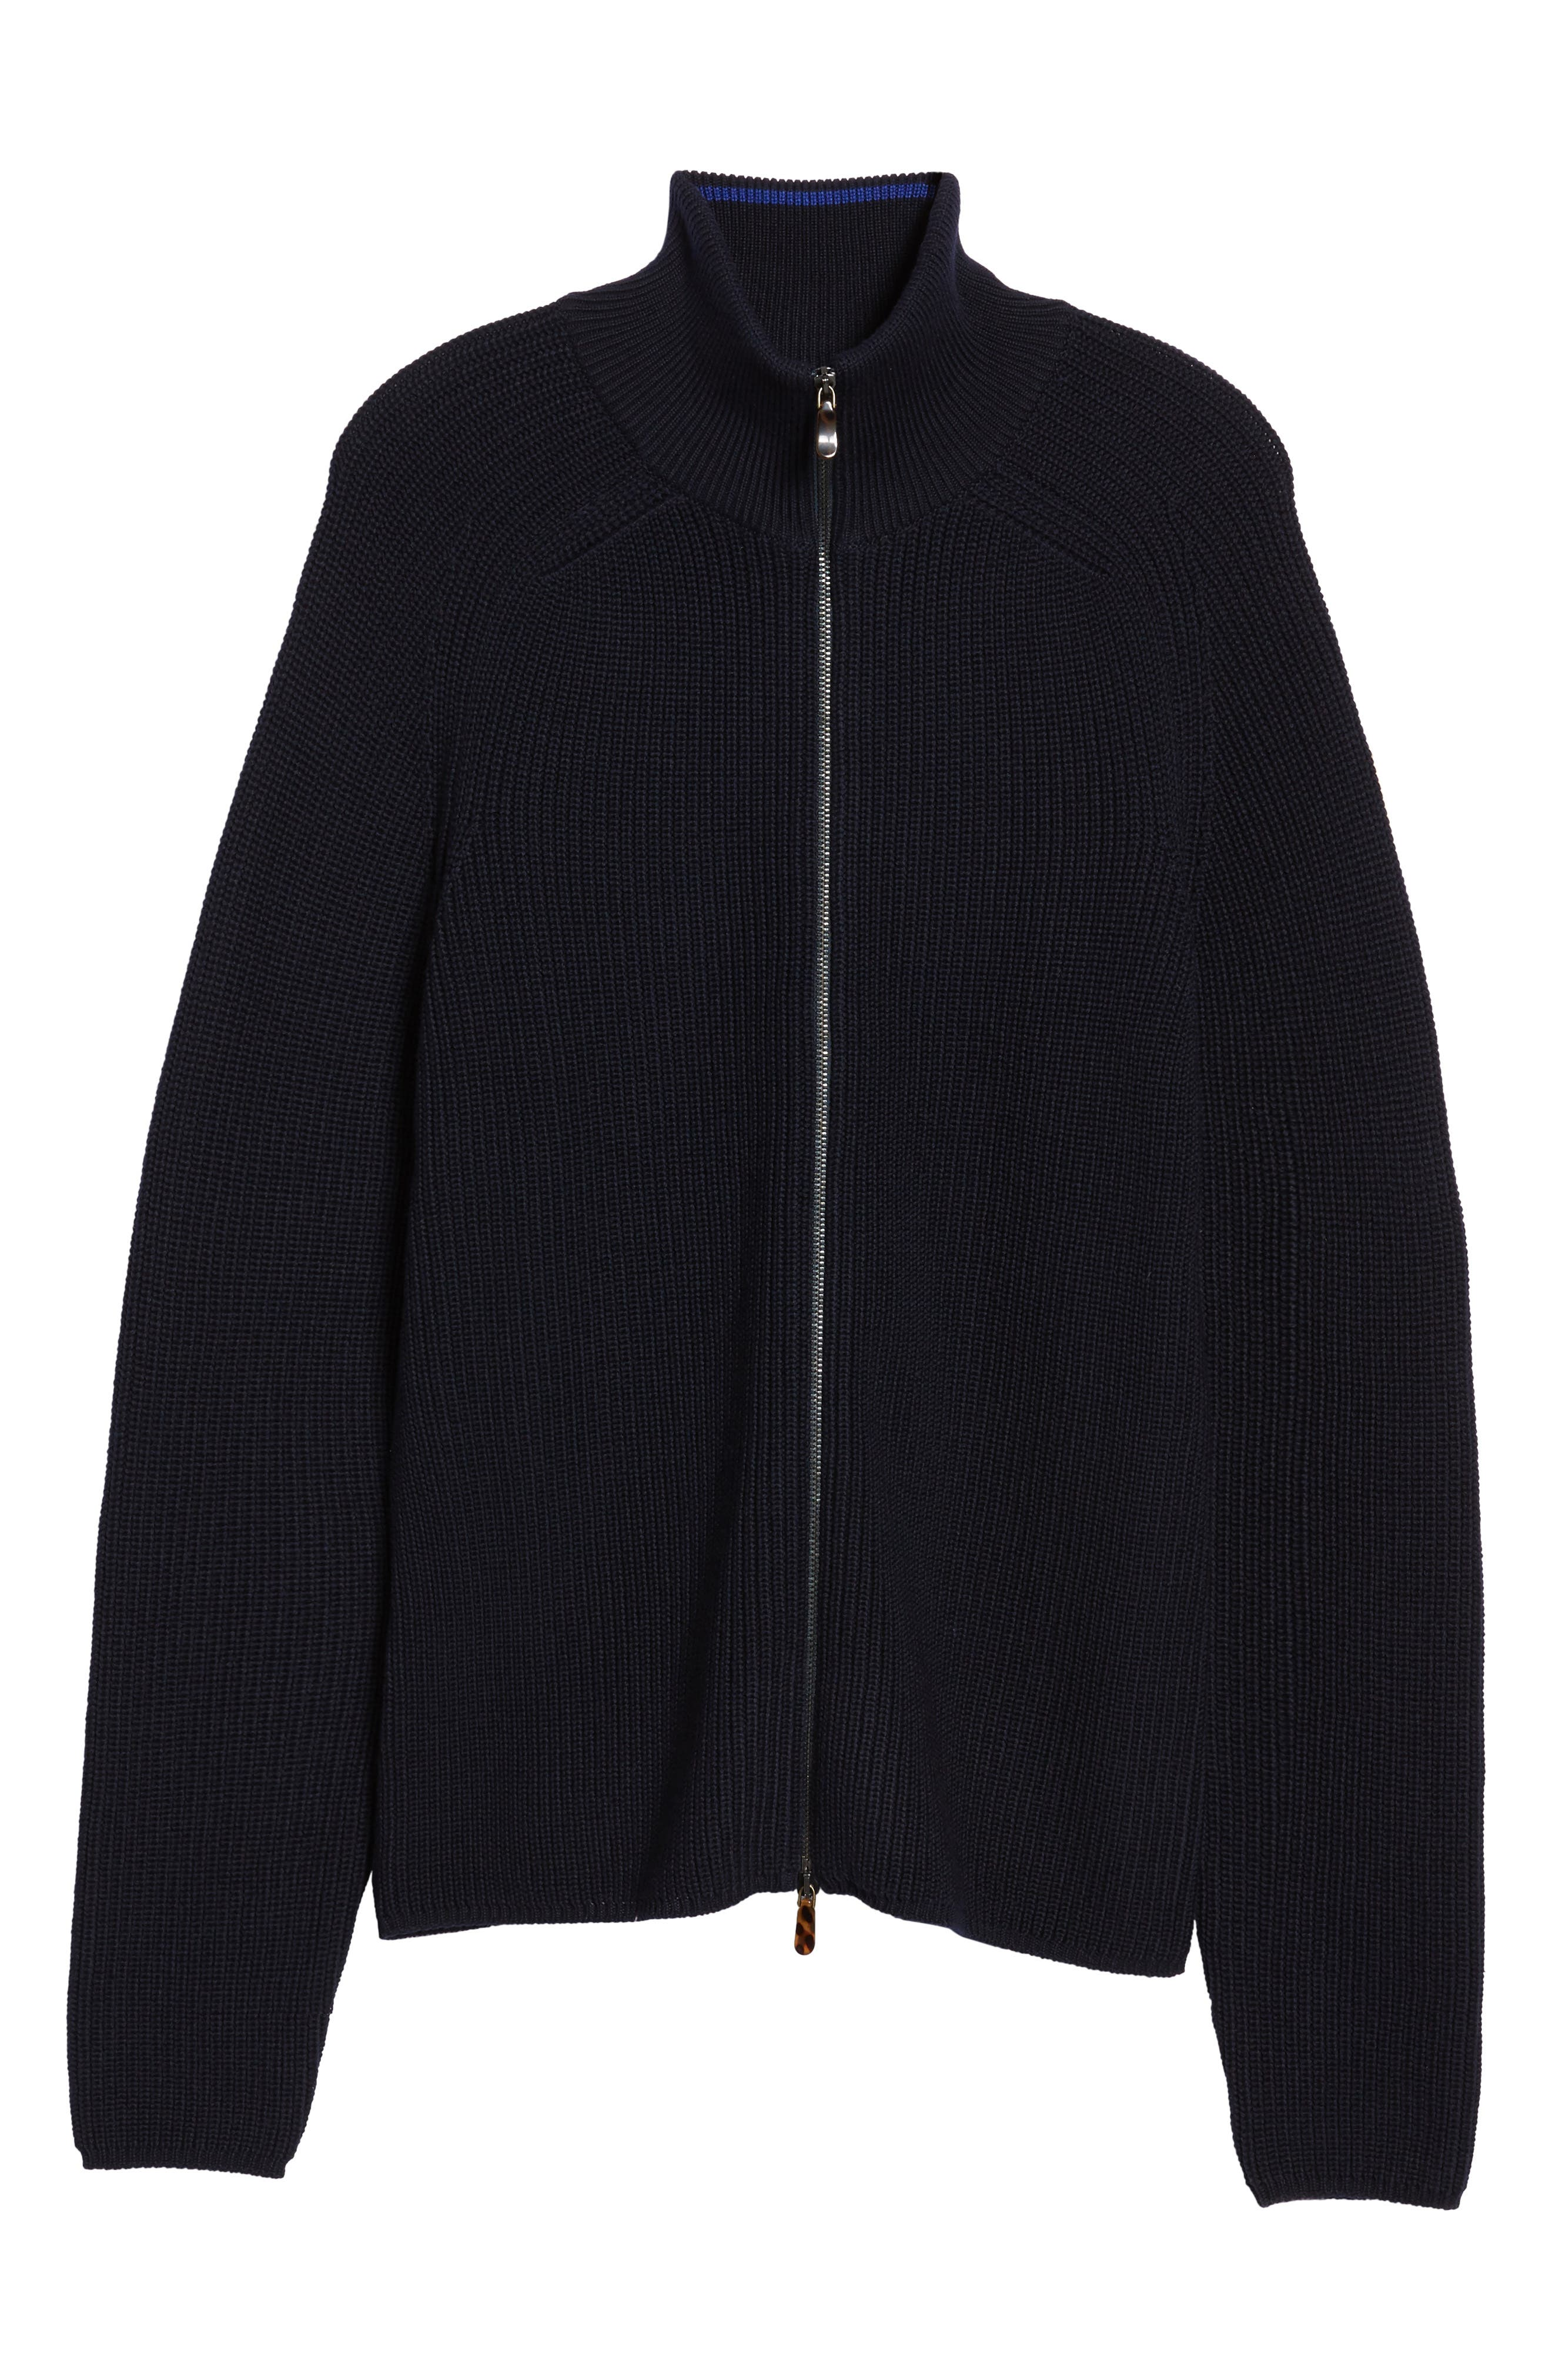 Shaker Stitch Wool Zip Cardigan,                             Alternate thumbnail 6, color,                             Navy